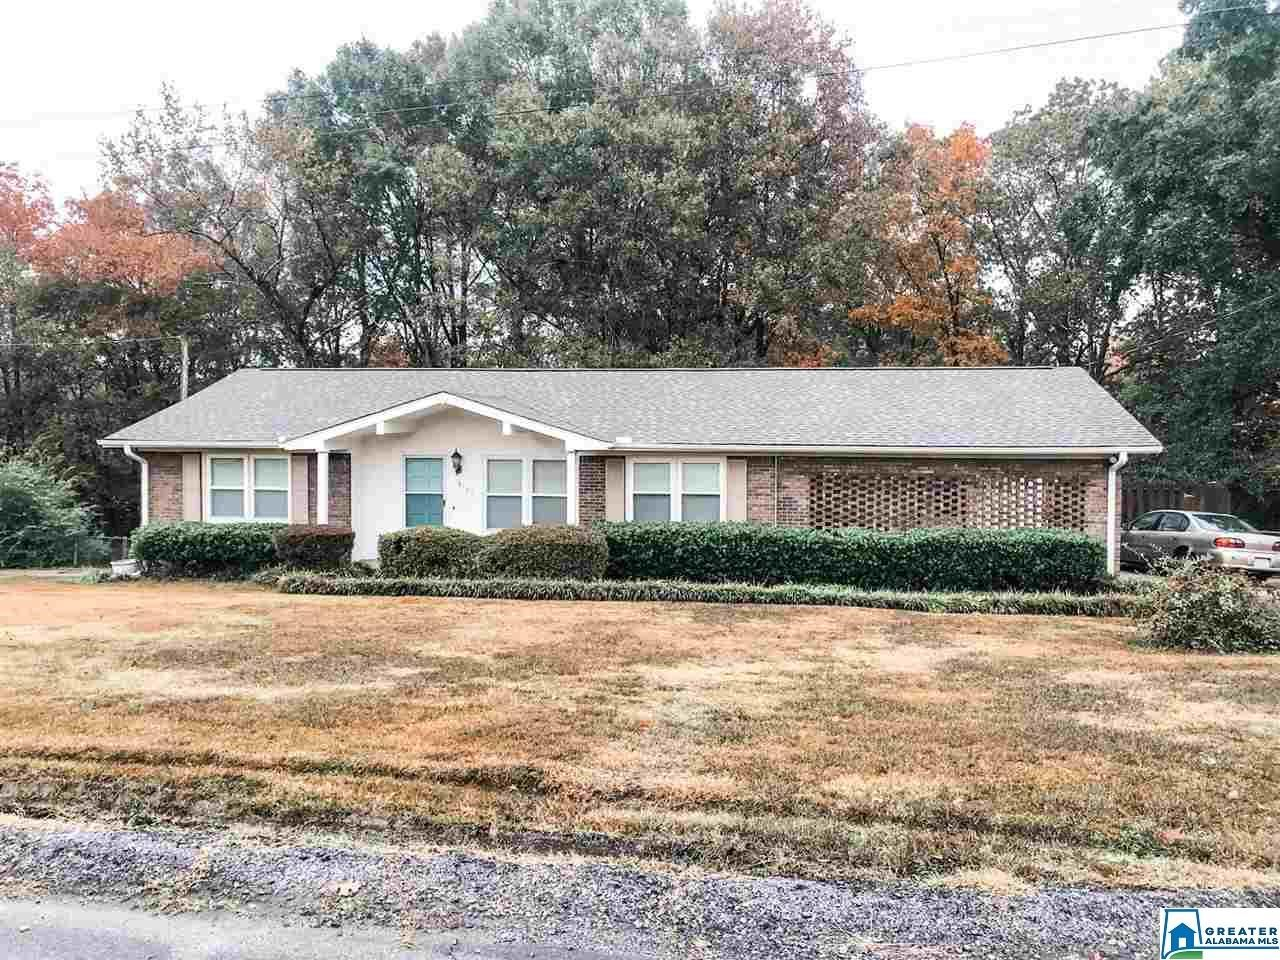 6103 CHARTEE DR, Anniston, AL 36206 - MLS#: 870745